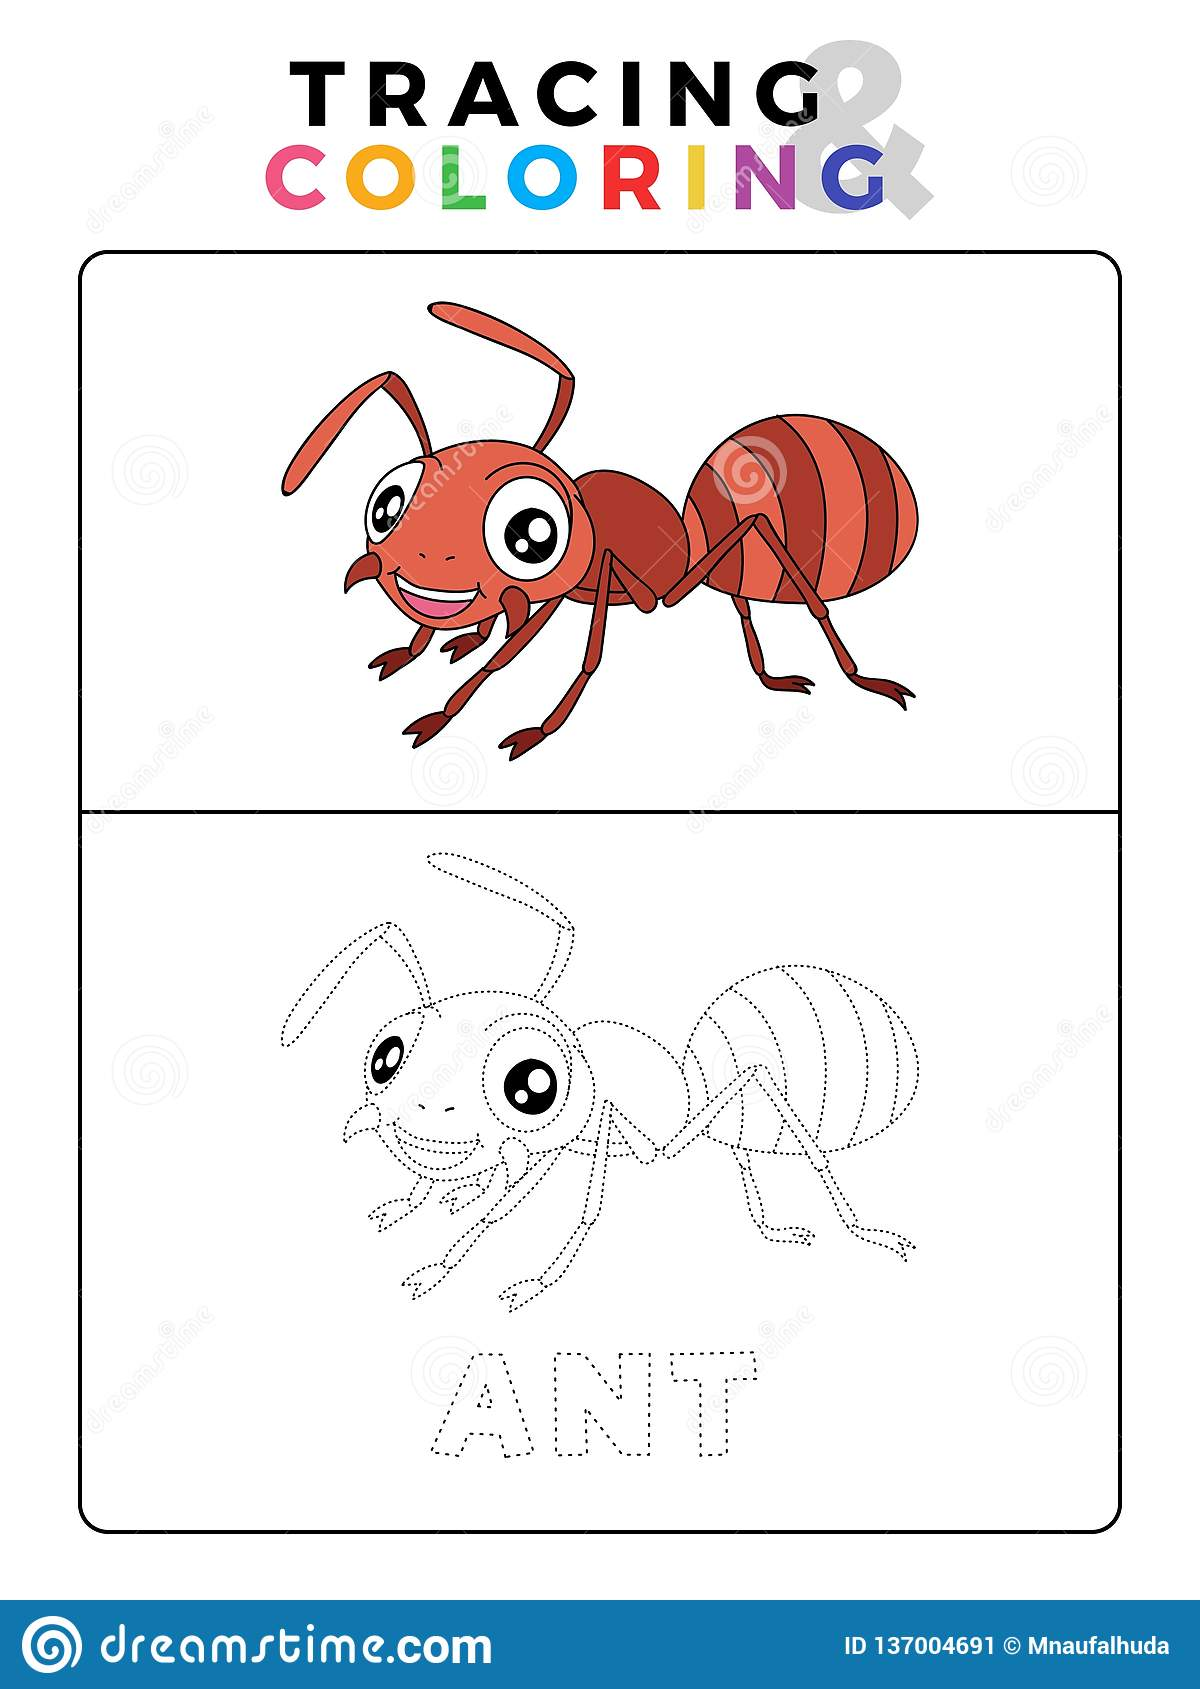 Funny Ant Insect Animal Tracing And Coloring Book With